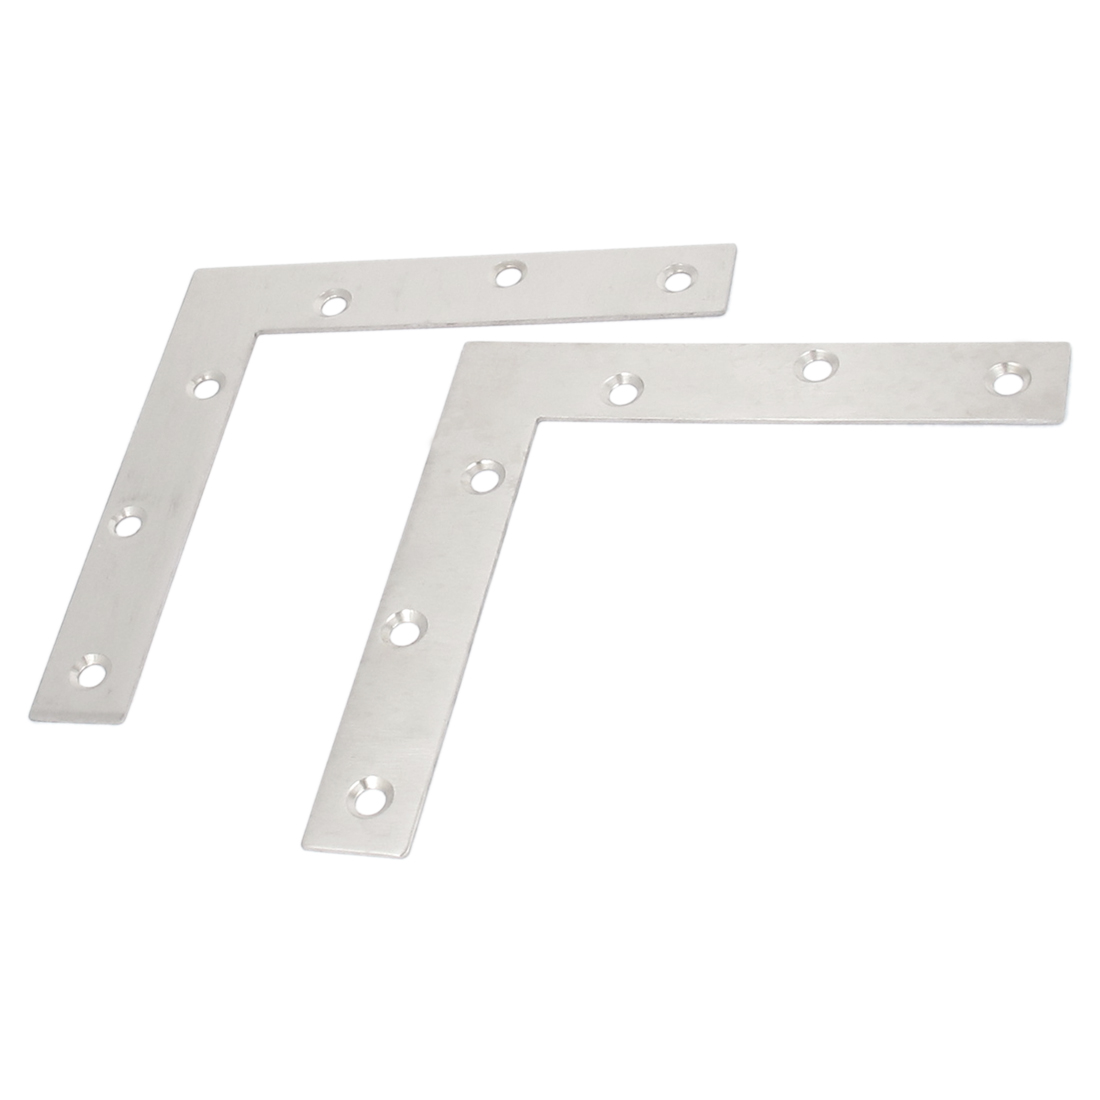 150mmx150mm Flat L Shape Corner Brace Repair Plate Right Angle Bracket 2pcs